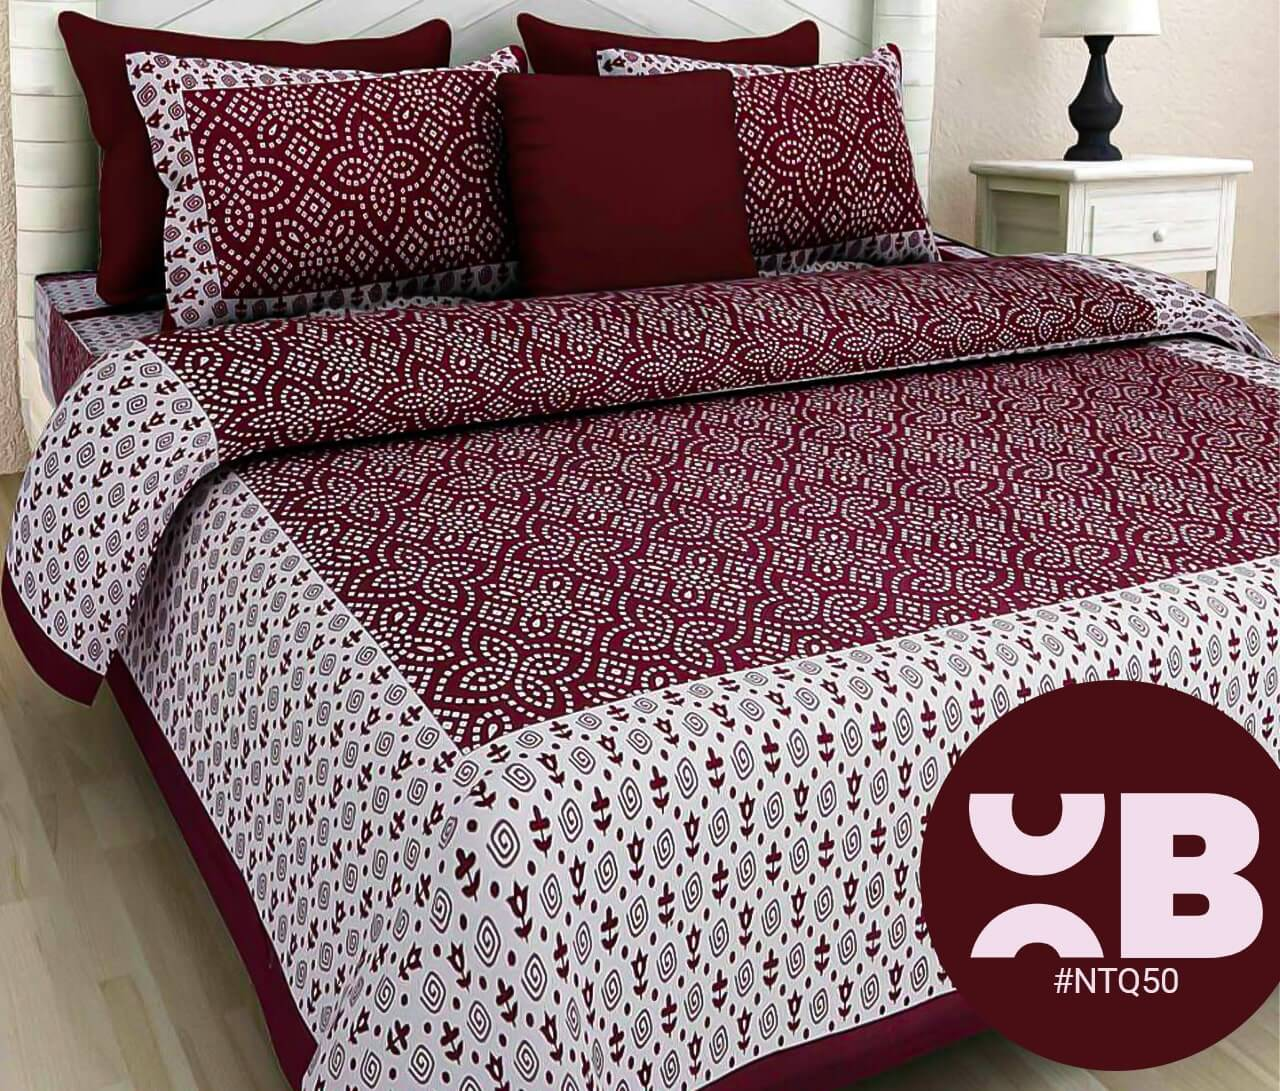 Maroon Bandhej Print Double Bedsheet With Two Pillow Covers (90x100)